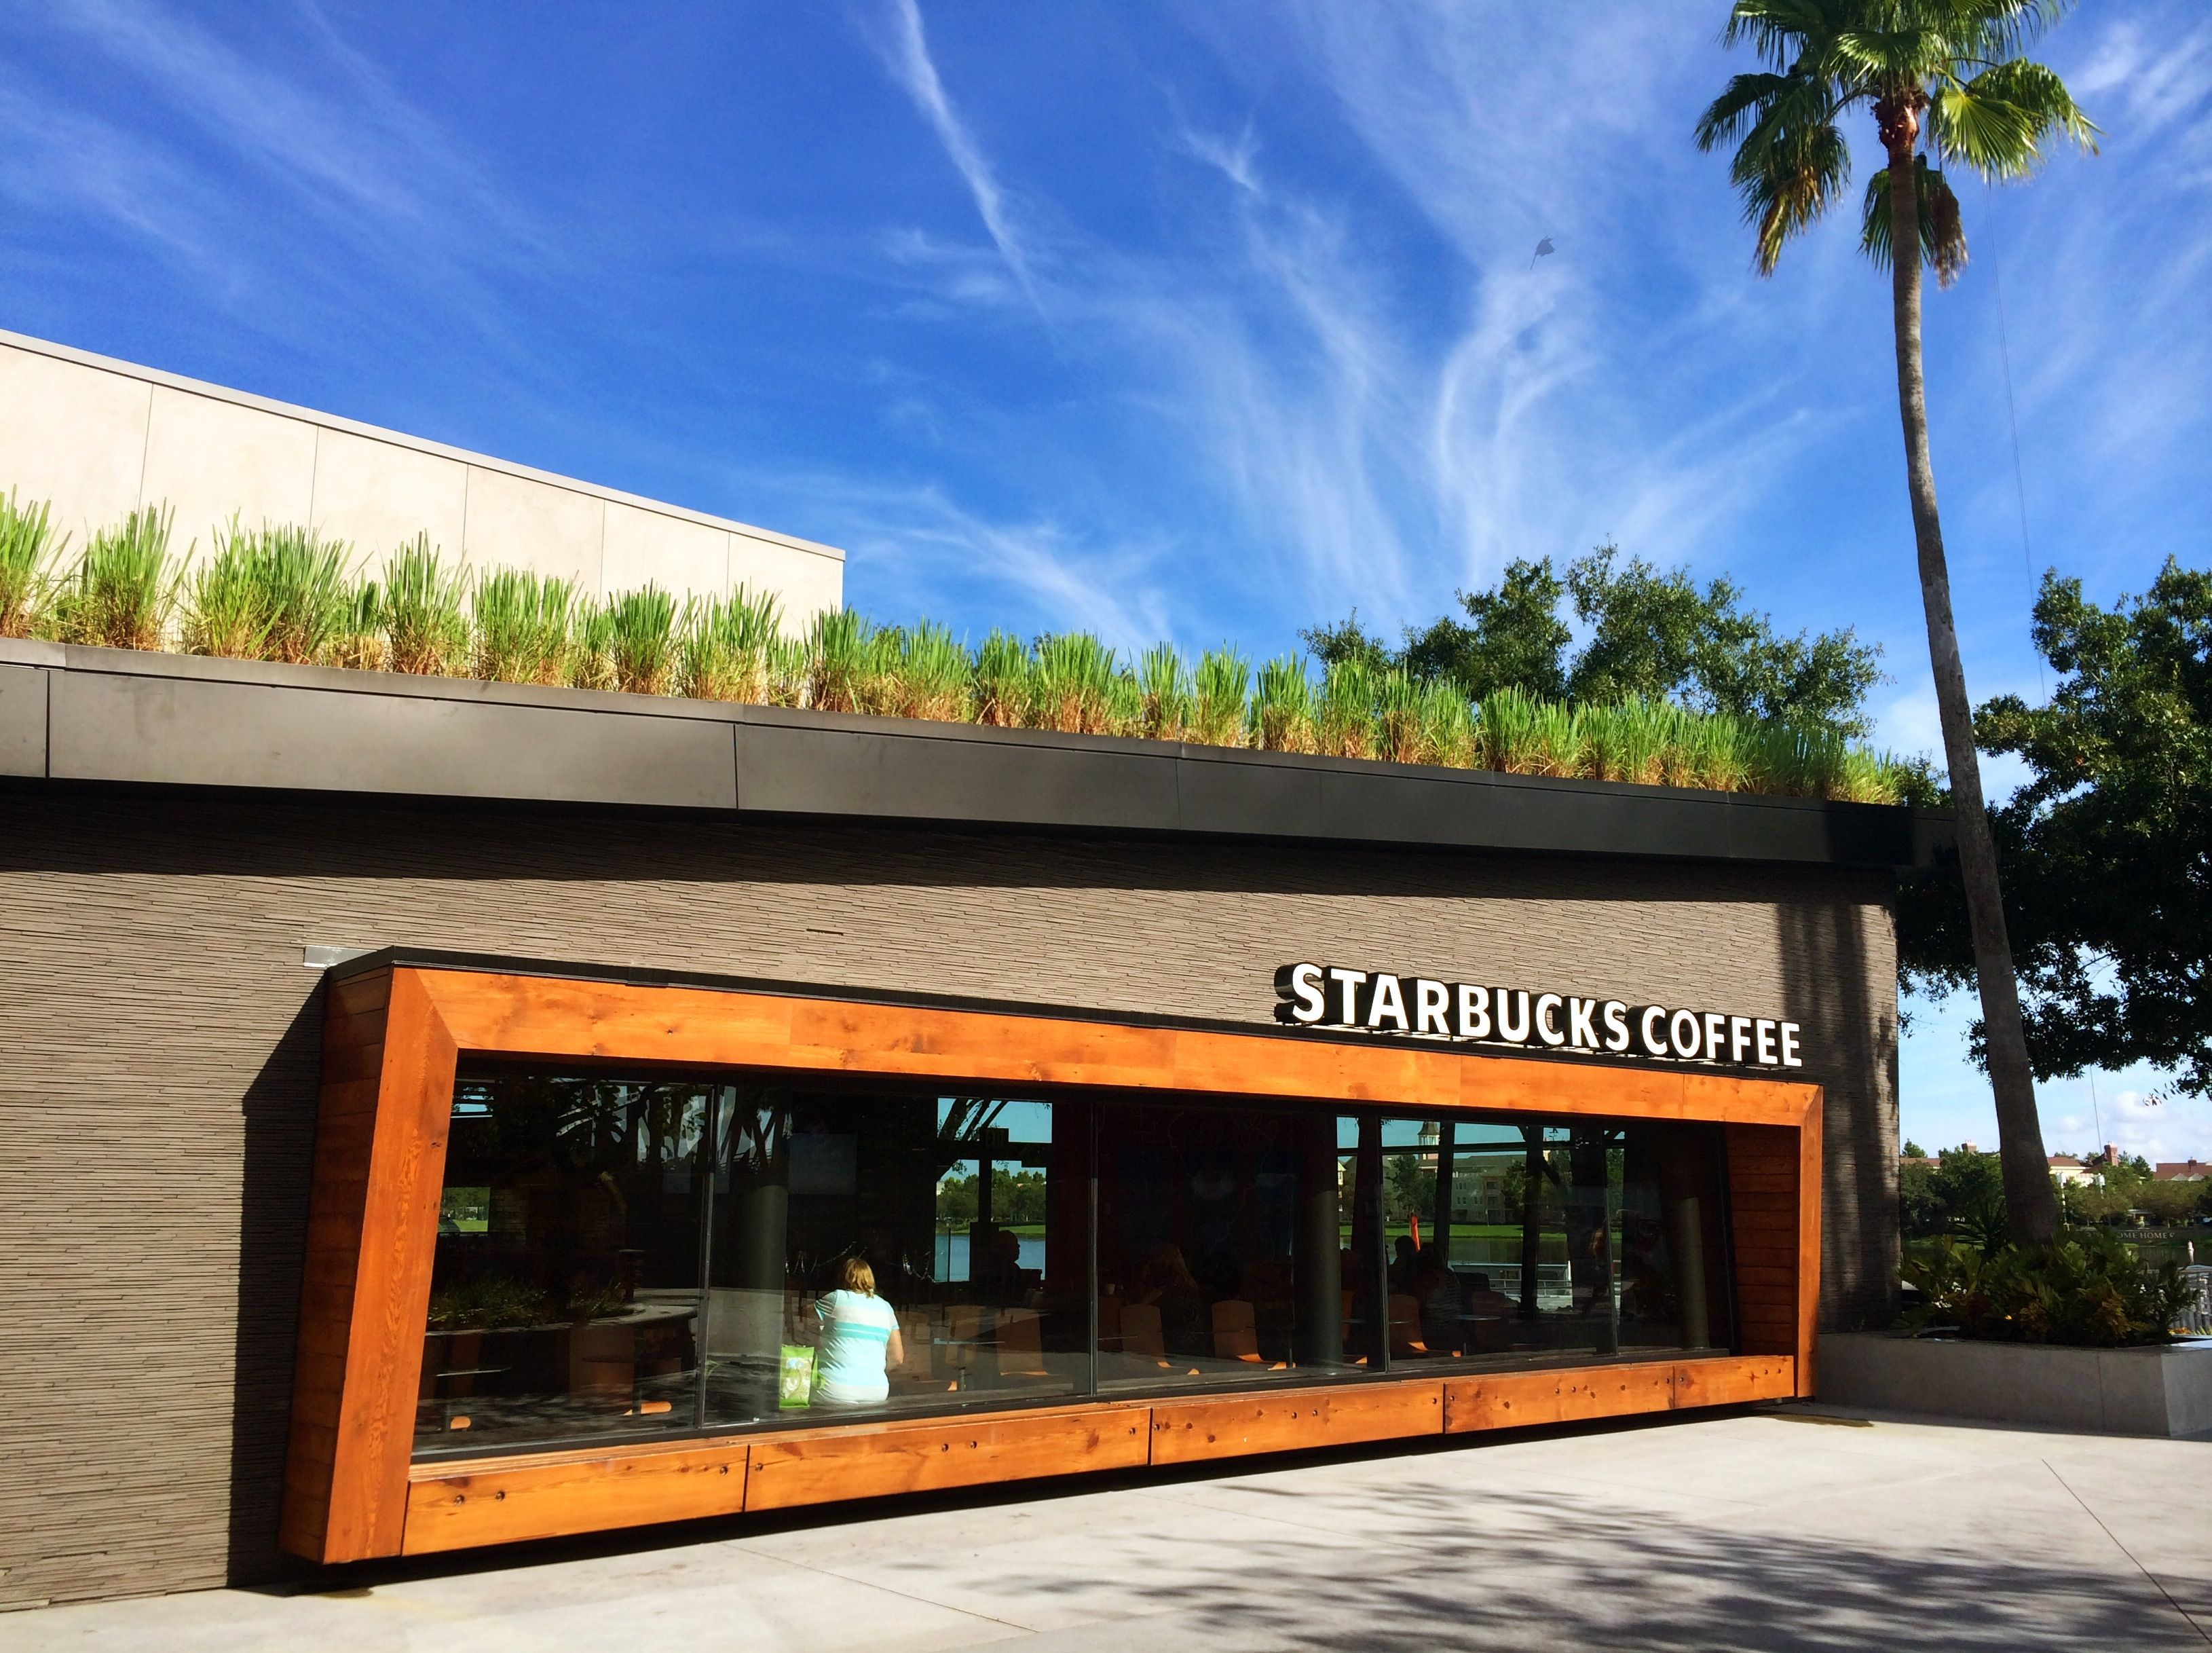 best 25 starbucks locations ideas on pinterest starbucks near starbucks is now available at two downtown disney locations at the walt disney world resort near